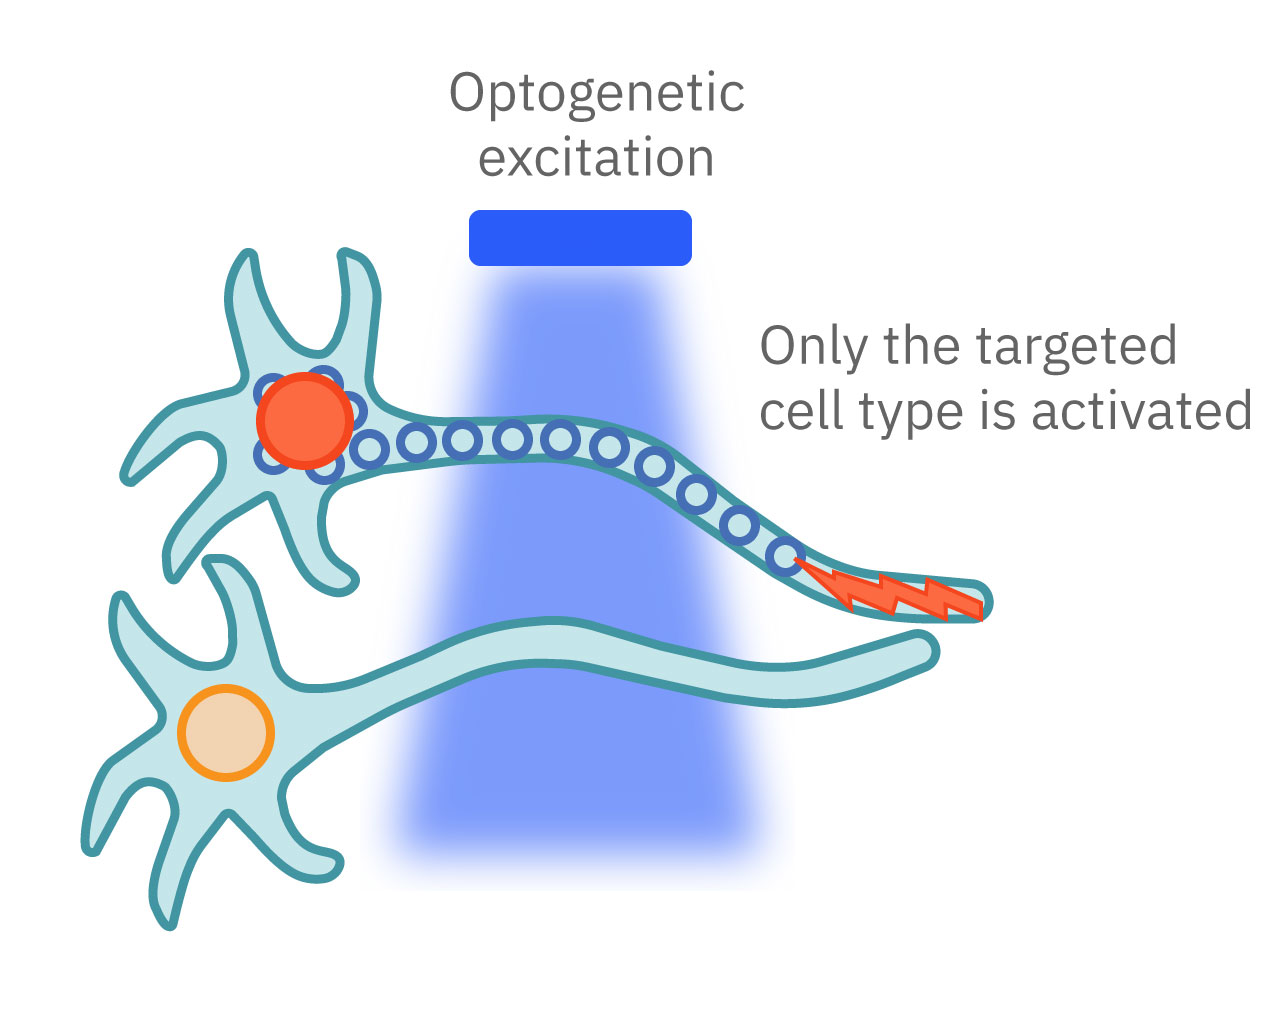 Optogentic activation of blue light neuron only